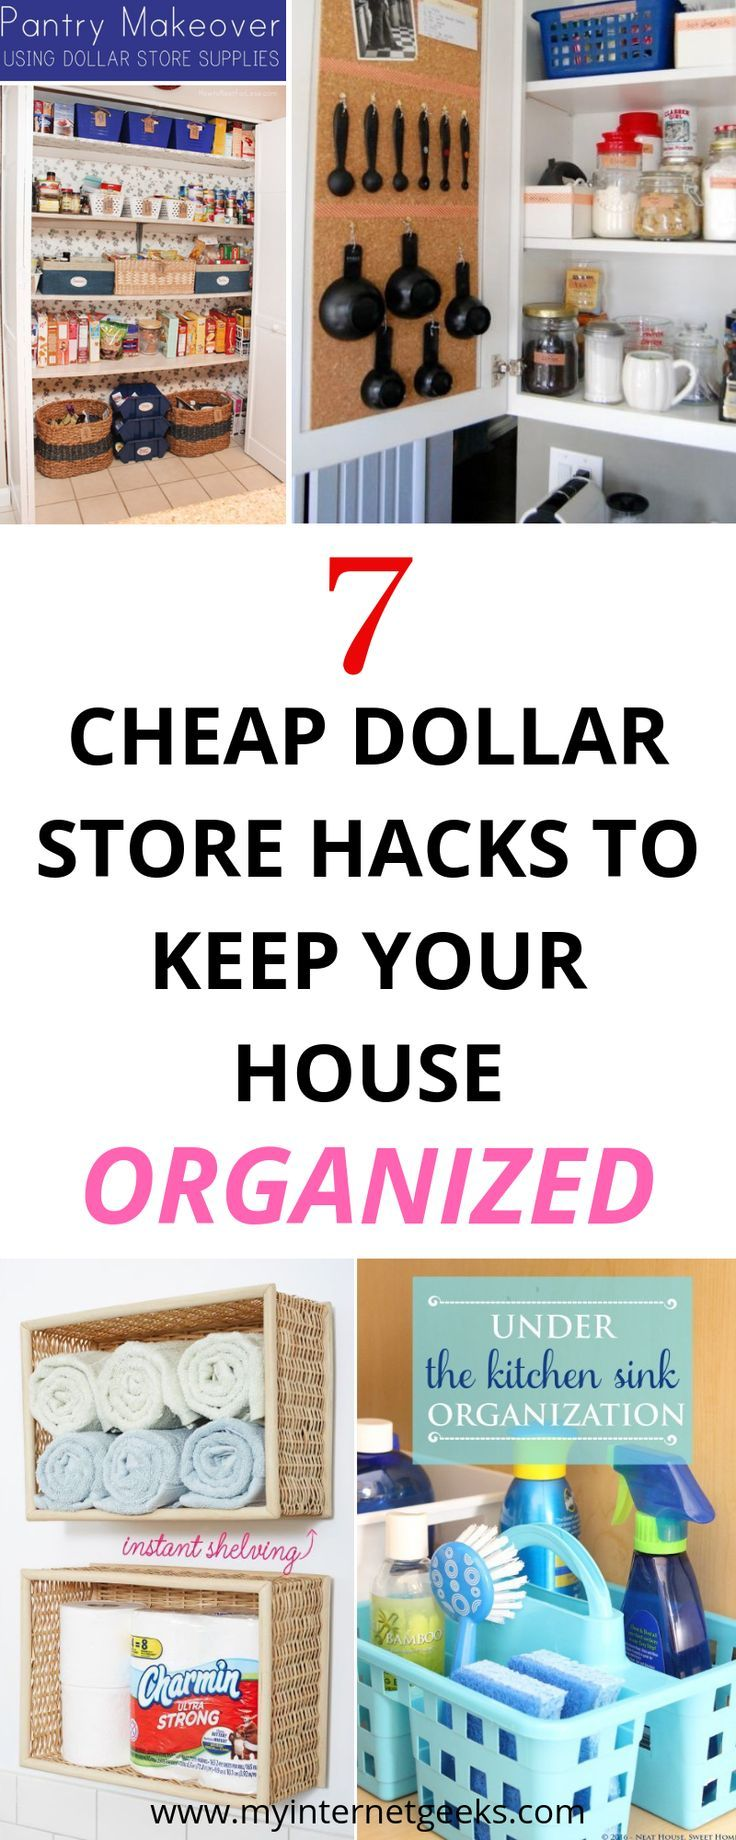 7 Dollar Store Hacks that'll make your life so much easier